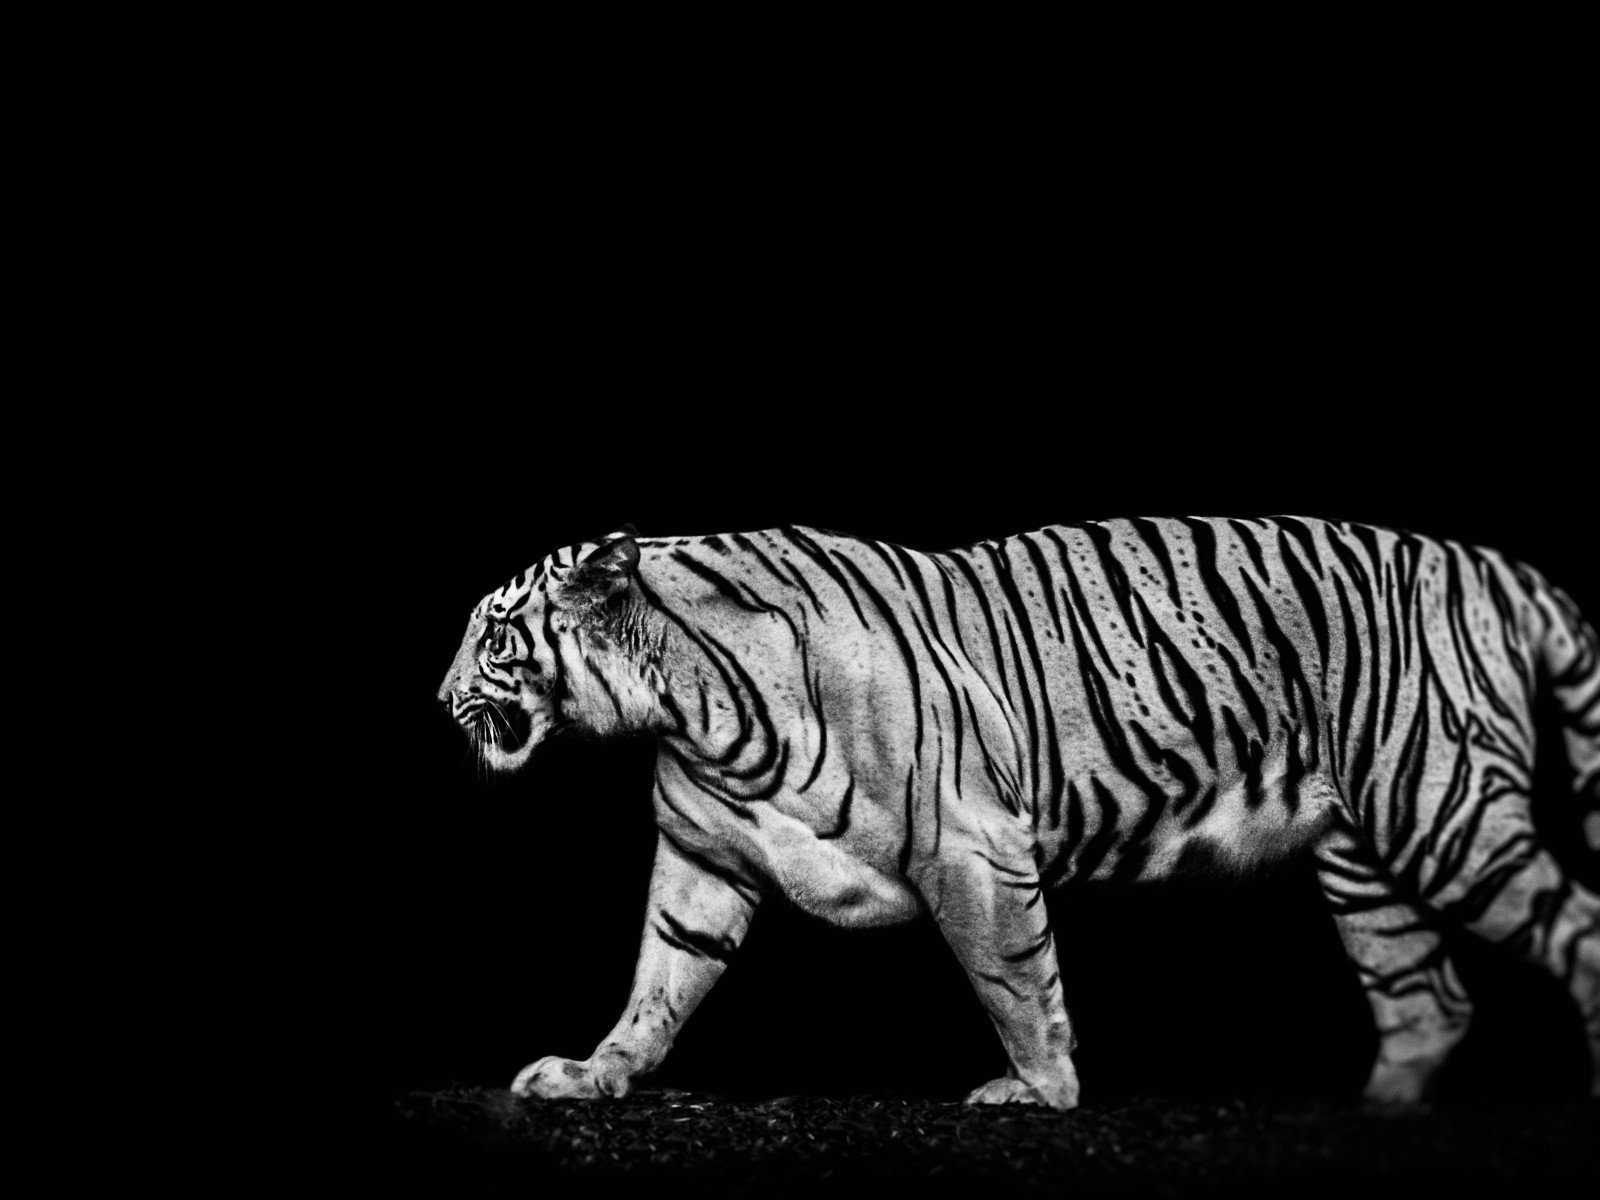 Tiger in the darkness | 1600x1200 wallpaper